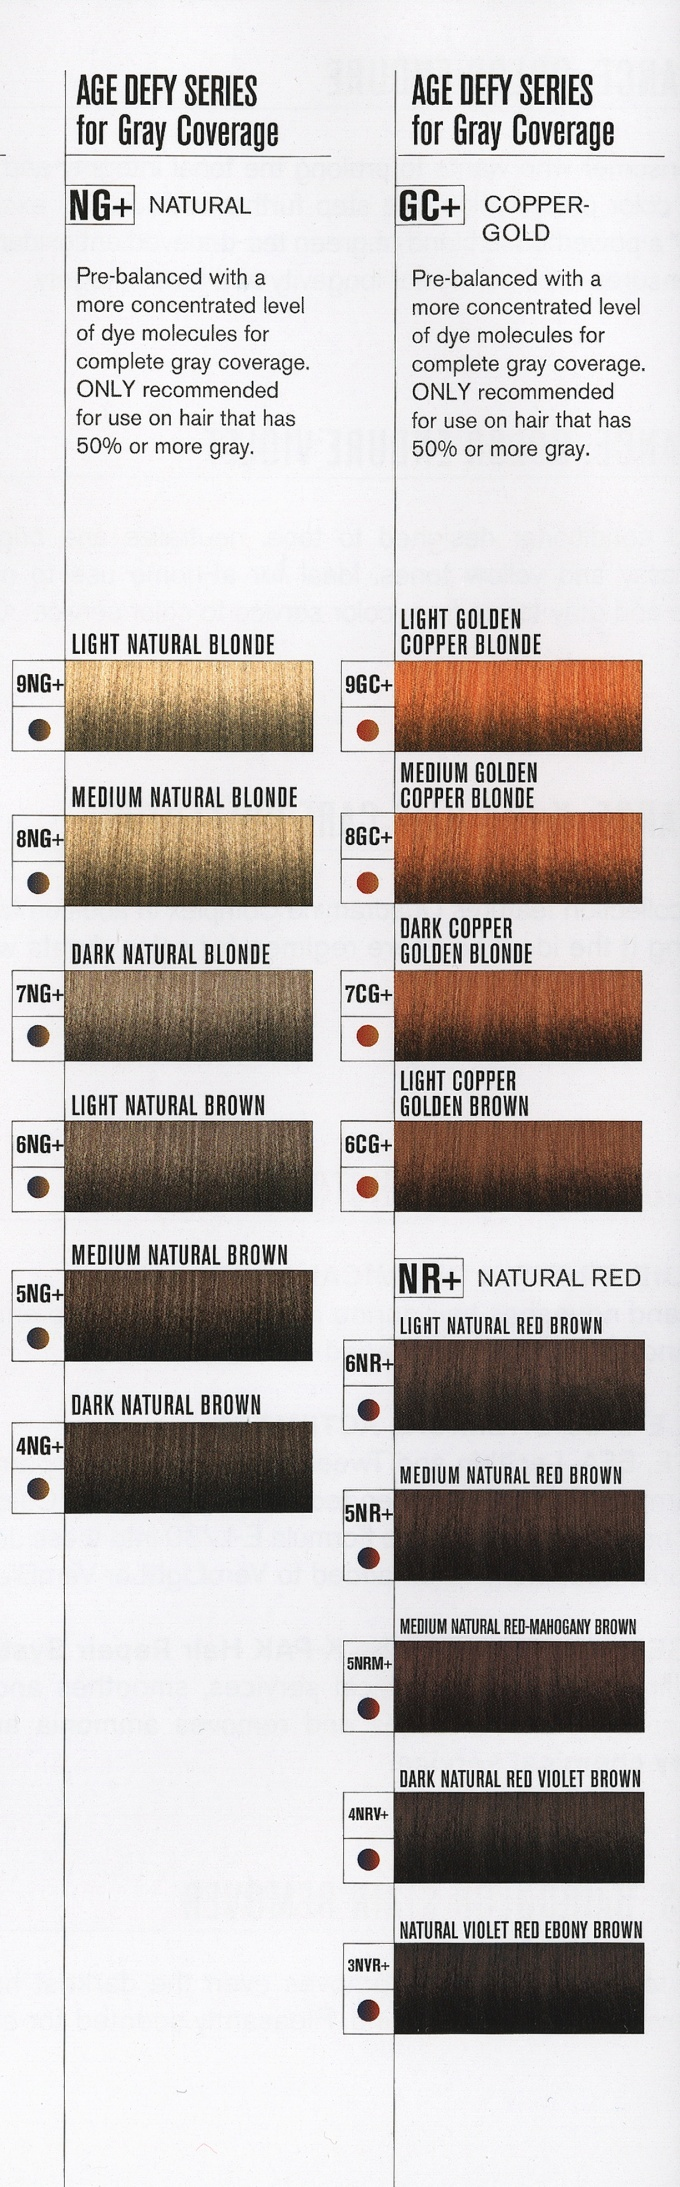 Joico age defy color chart gallery free any chart examples vero k pak color chart image collections free any chart examples joico chrome hair color chart nvjuhfo Gallery